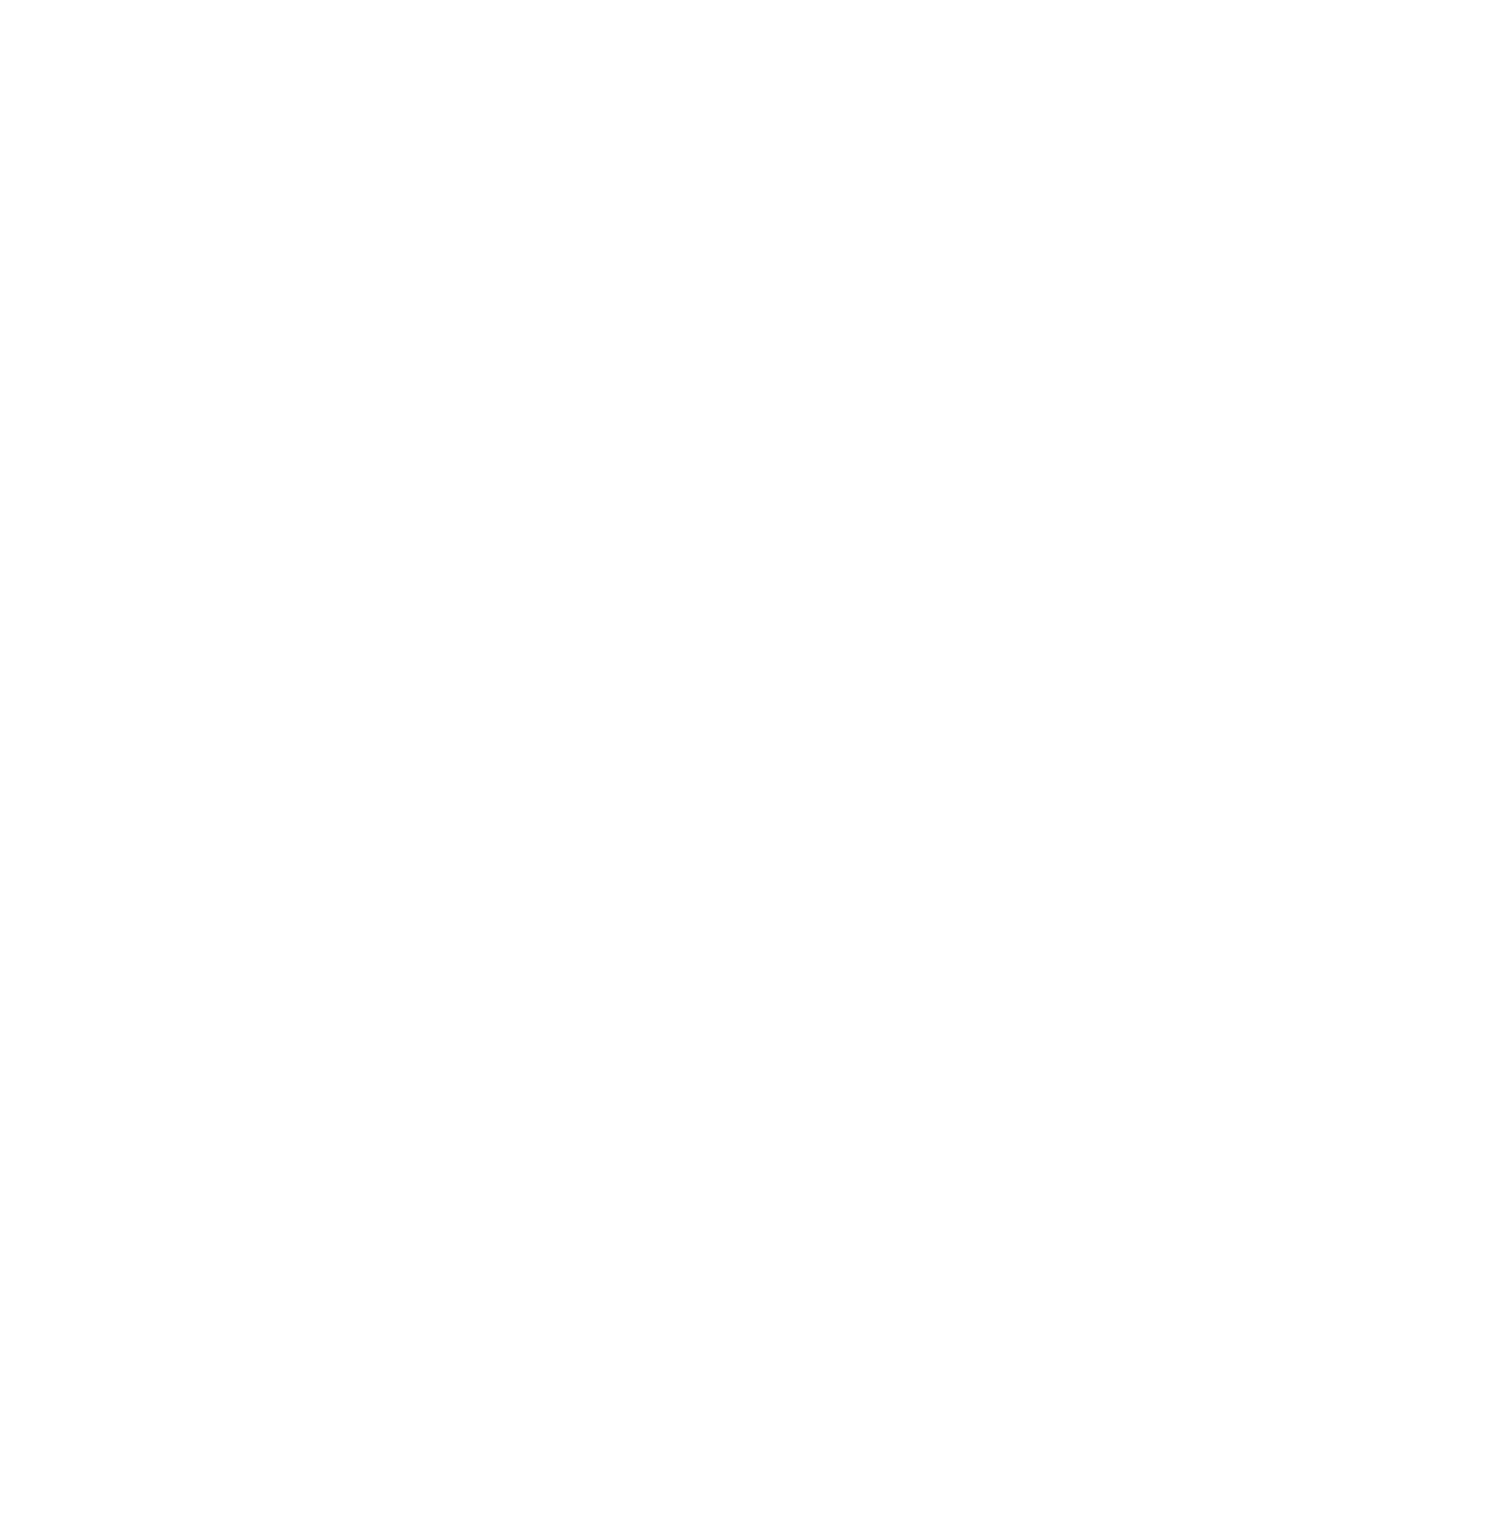 Branstetter Film